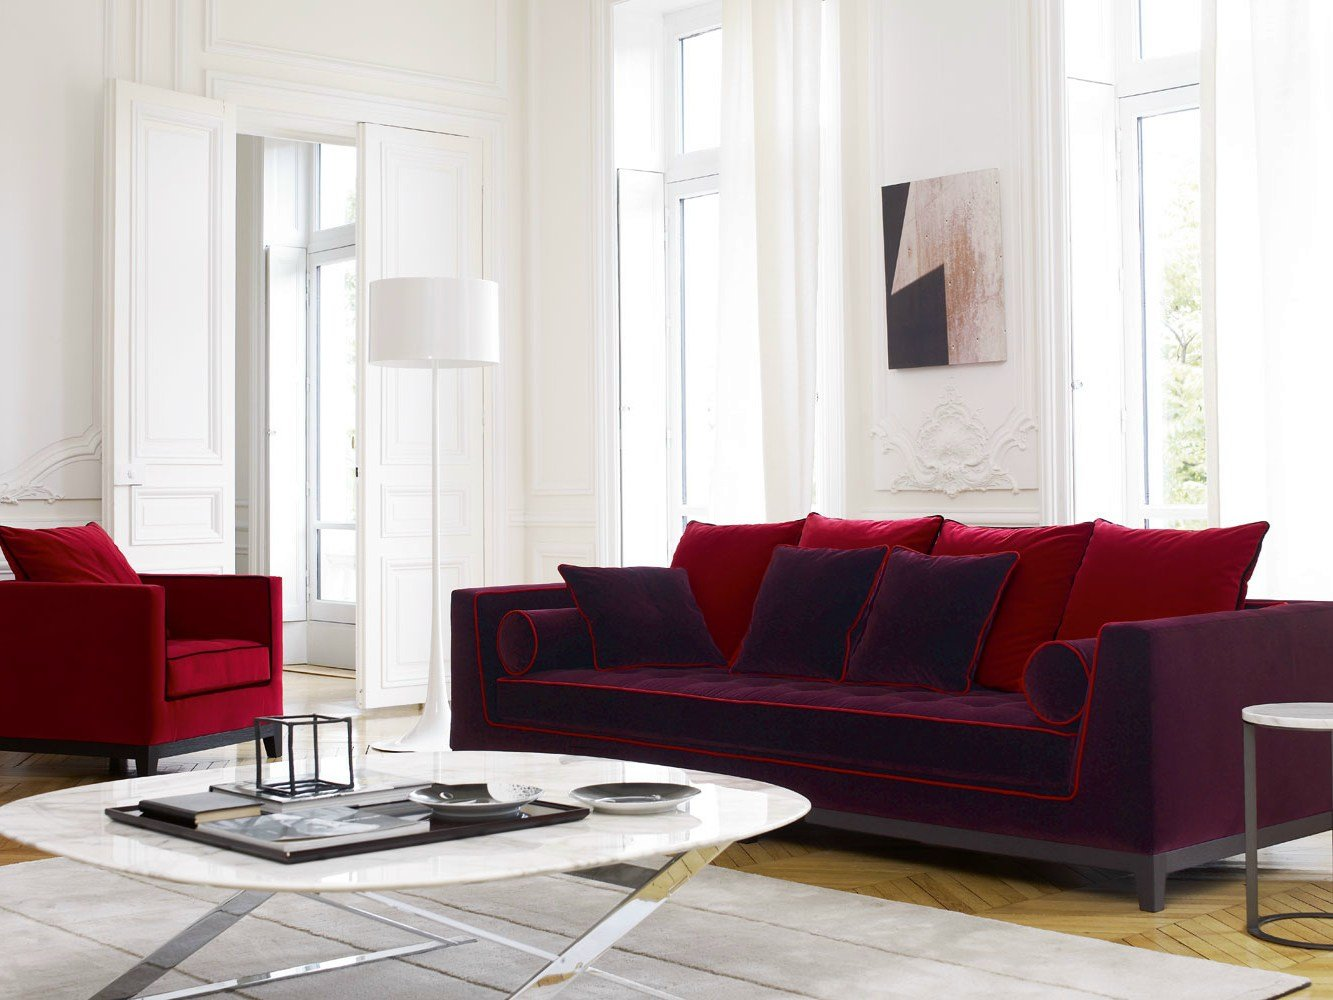 Fabric sofa lutetia 2011 by maxalto a brand of b b italia for B b italia maxalto sofa